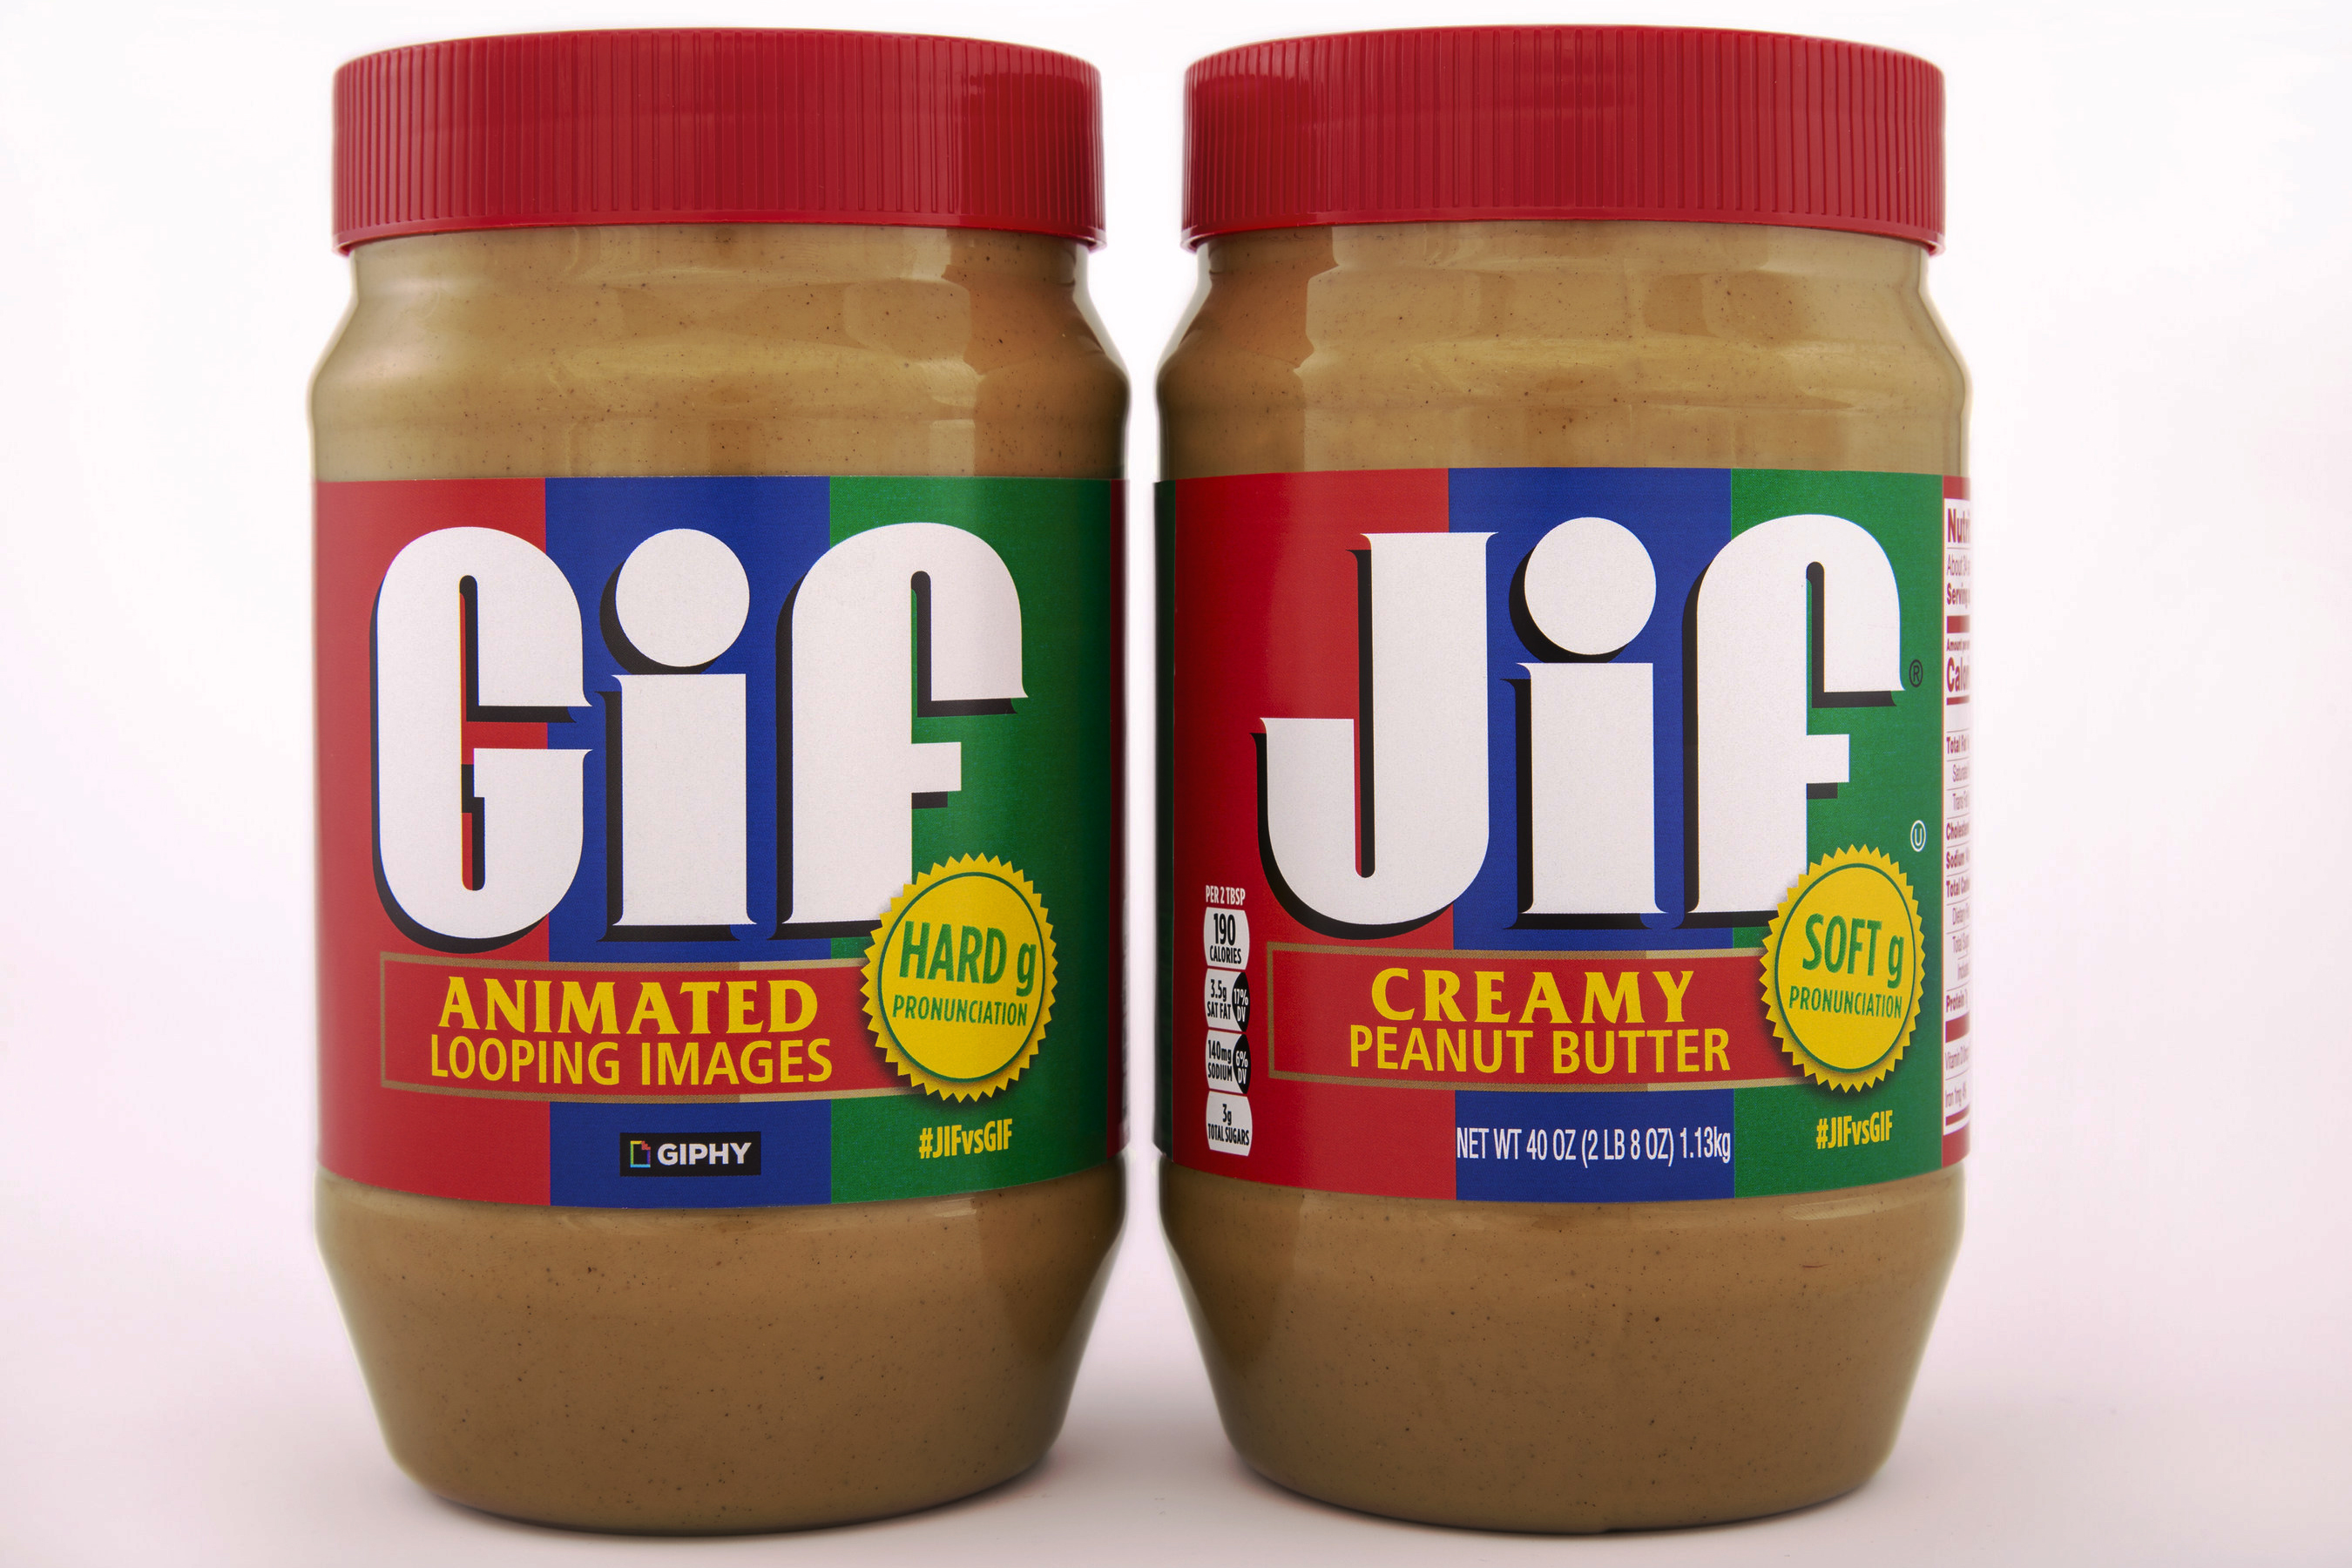 Jif peanut butter finally incorporates GIF' into a campaign. What took so long?